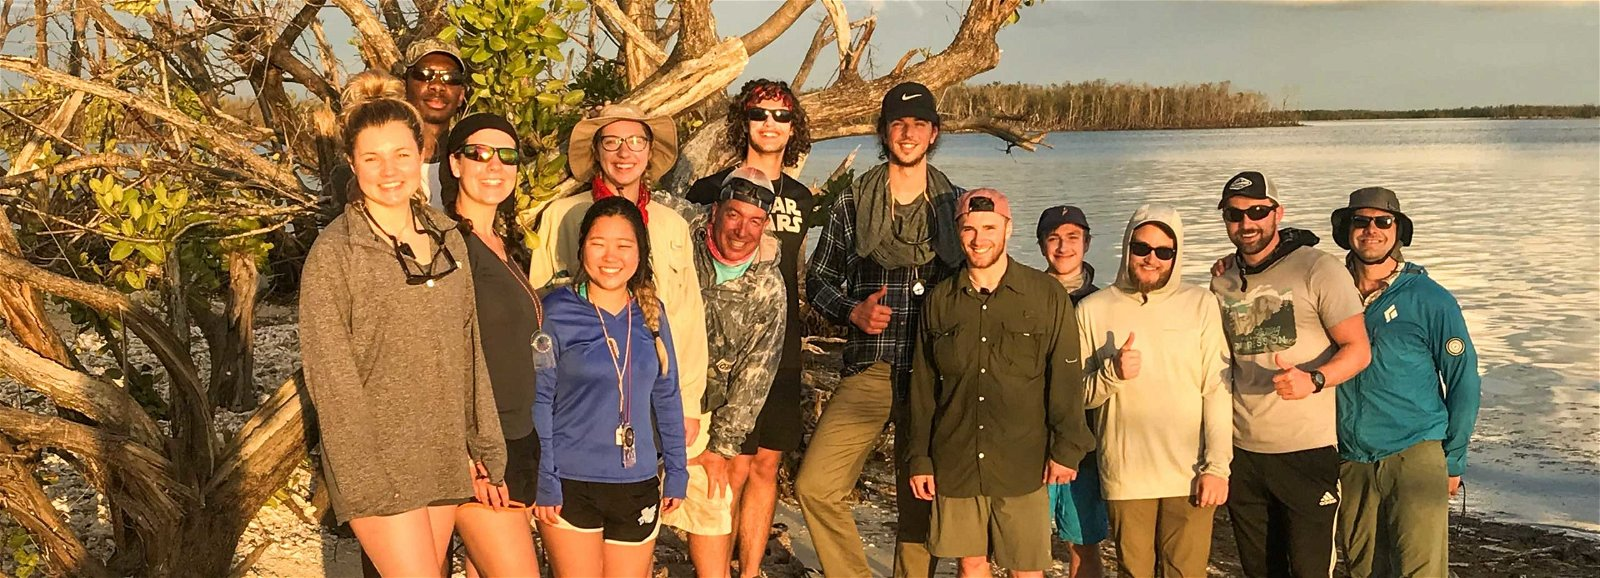 Group of teens in the Florida Everglades